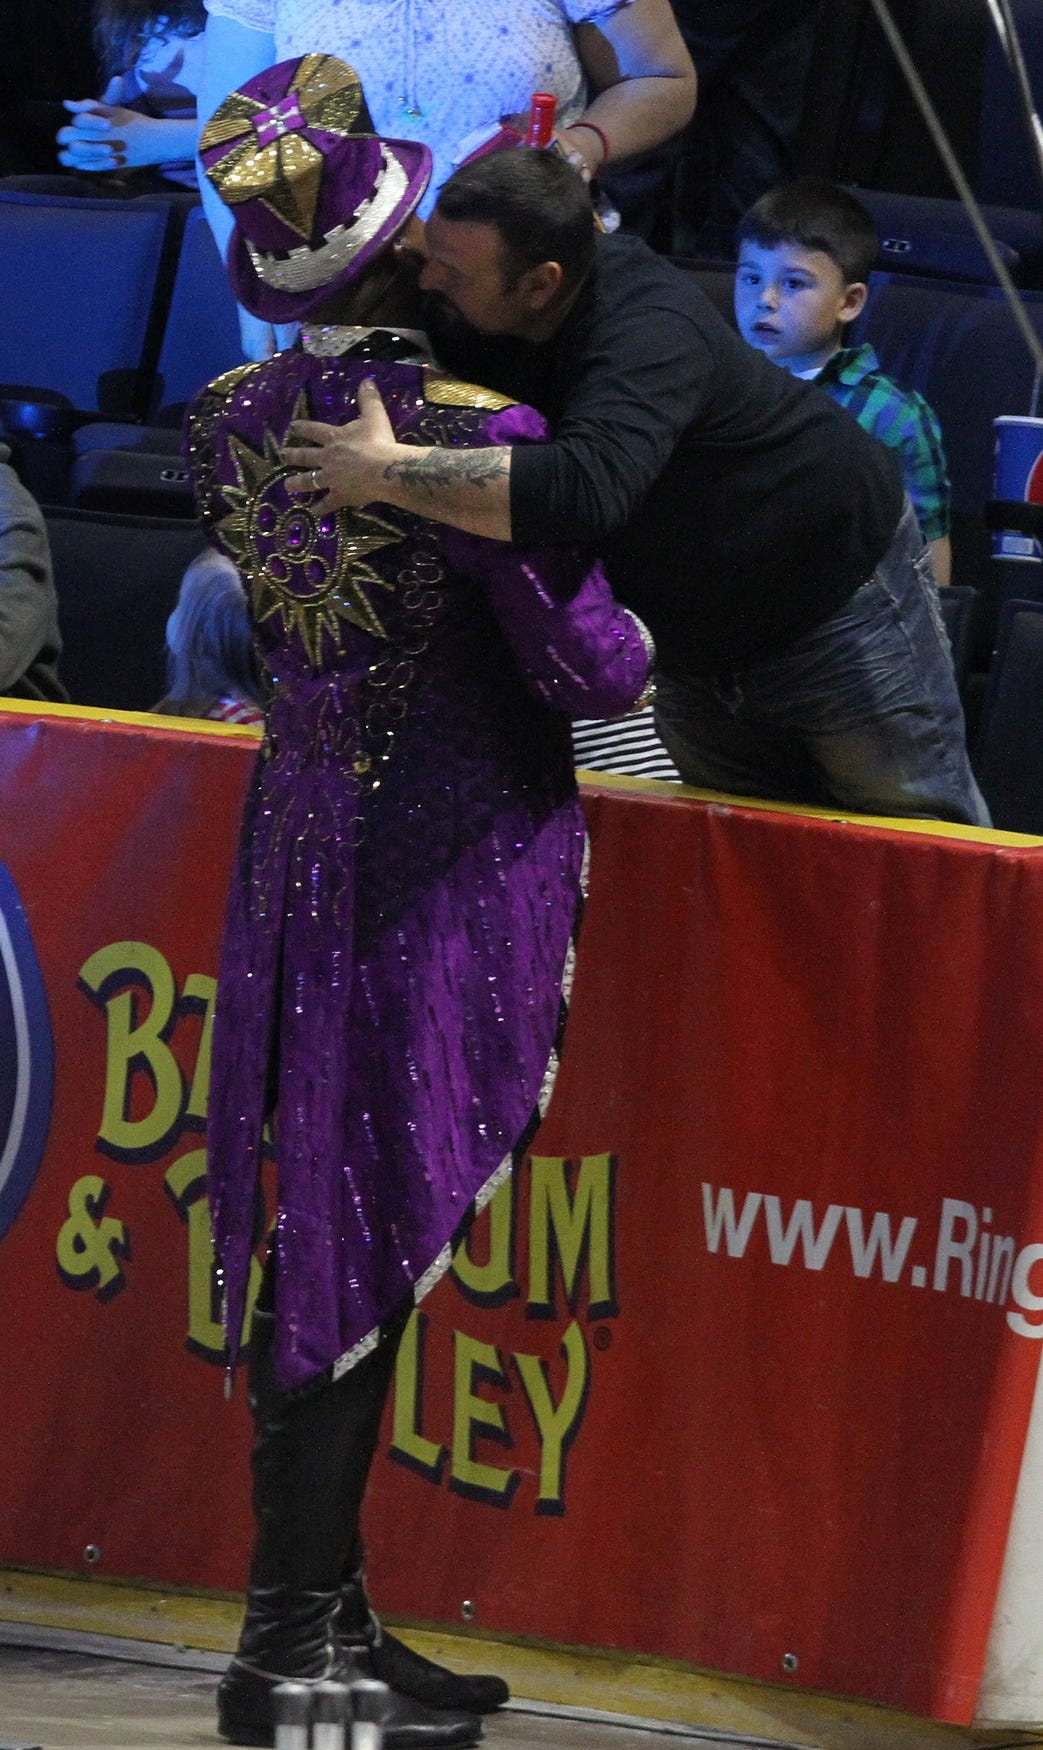 Johnathan Lee Iverson, Ringmaster of the Ringling Bros. and Barnum & Bailey LEGENDS was hugged by someone from the audience after he asked the crowd to leave, telling them they could not continue with the show.